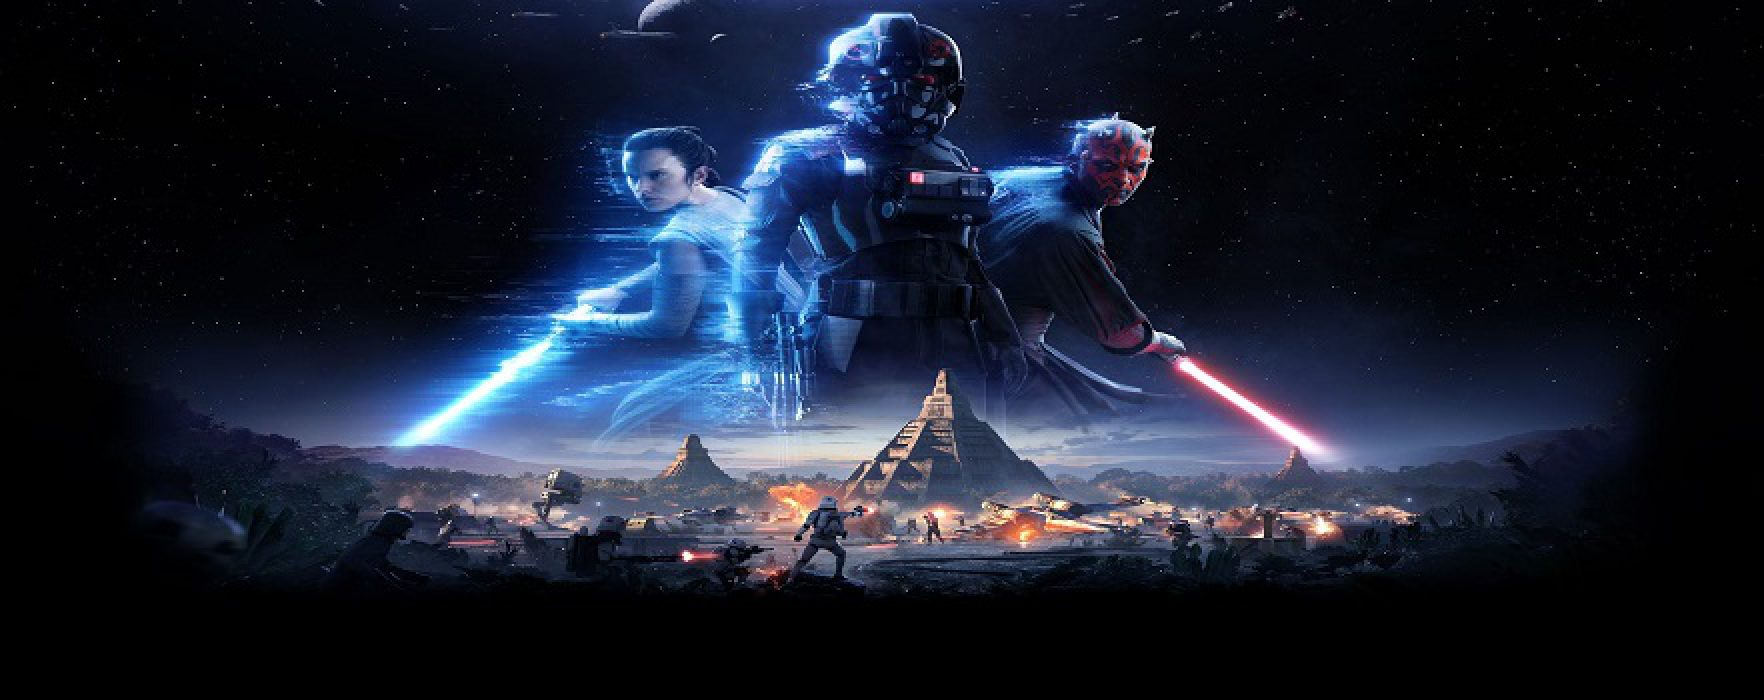 Official Star Wars: Battlefront II Trailer Is Out